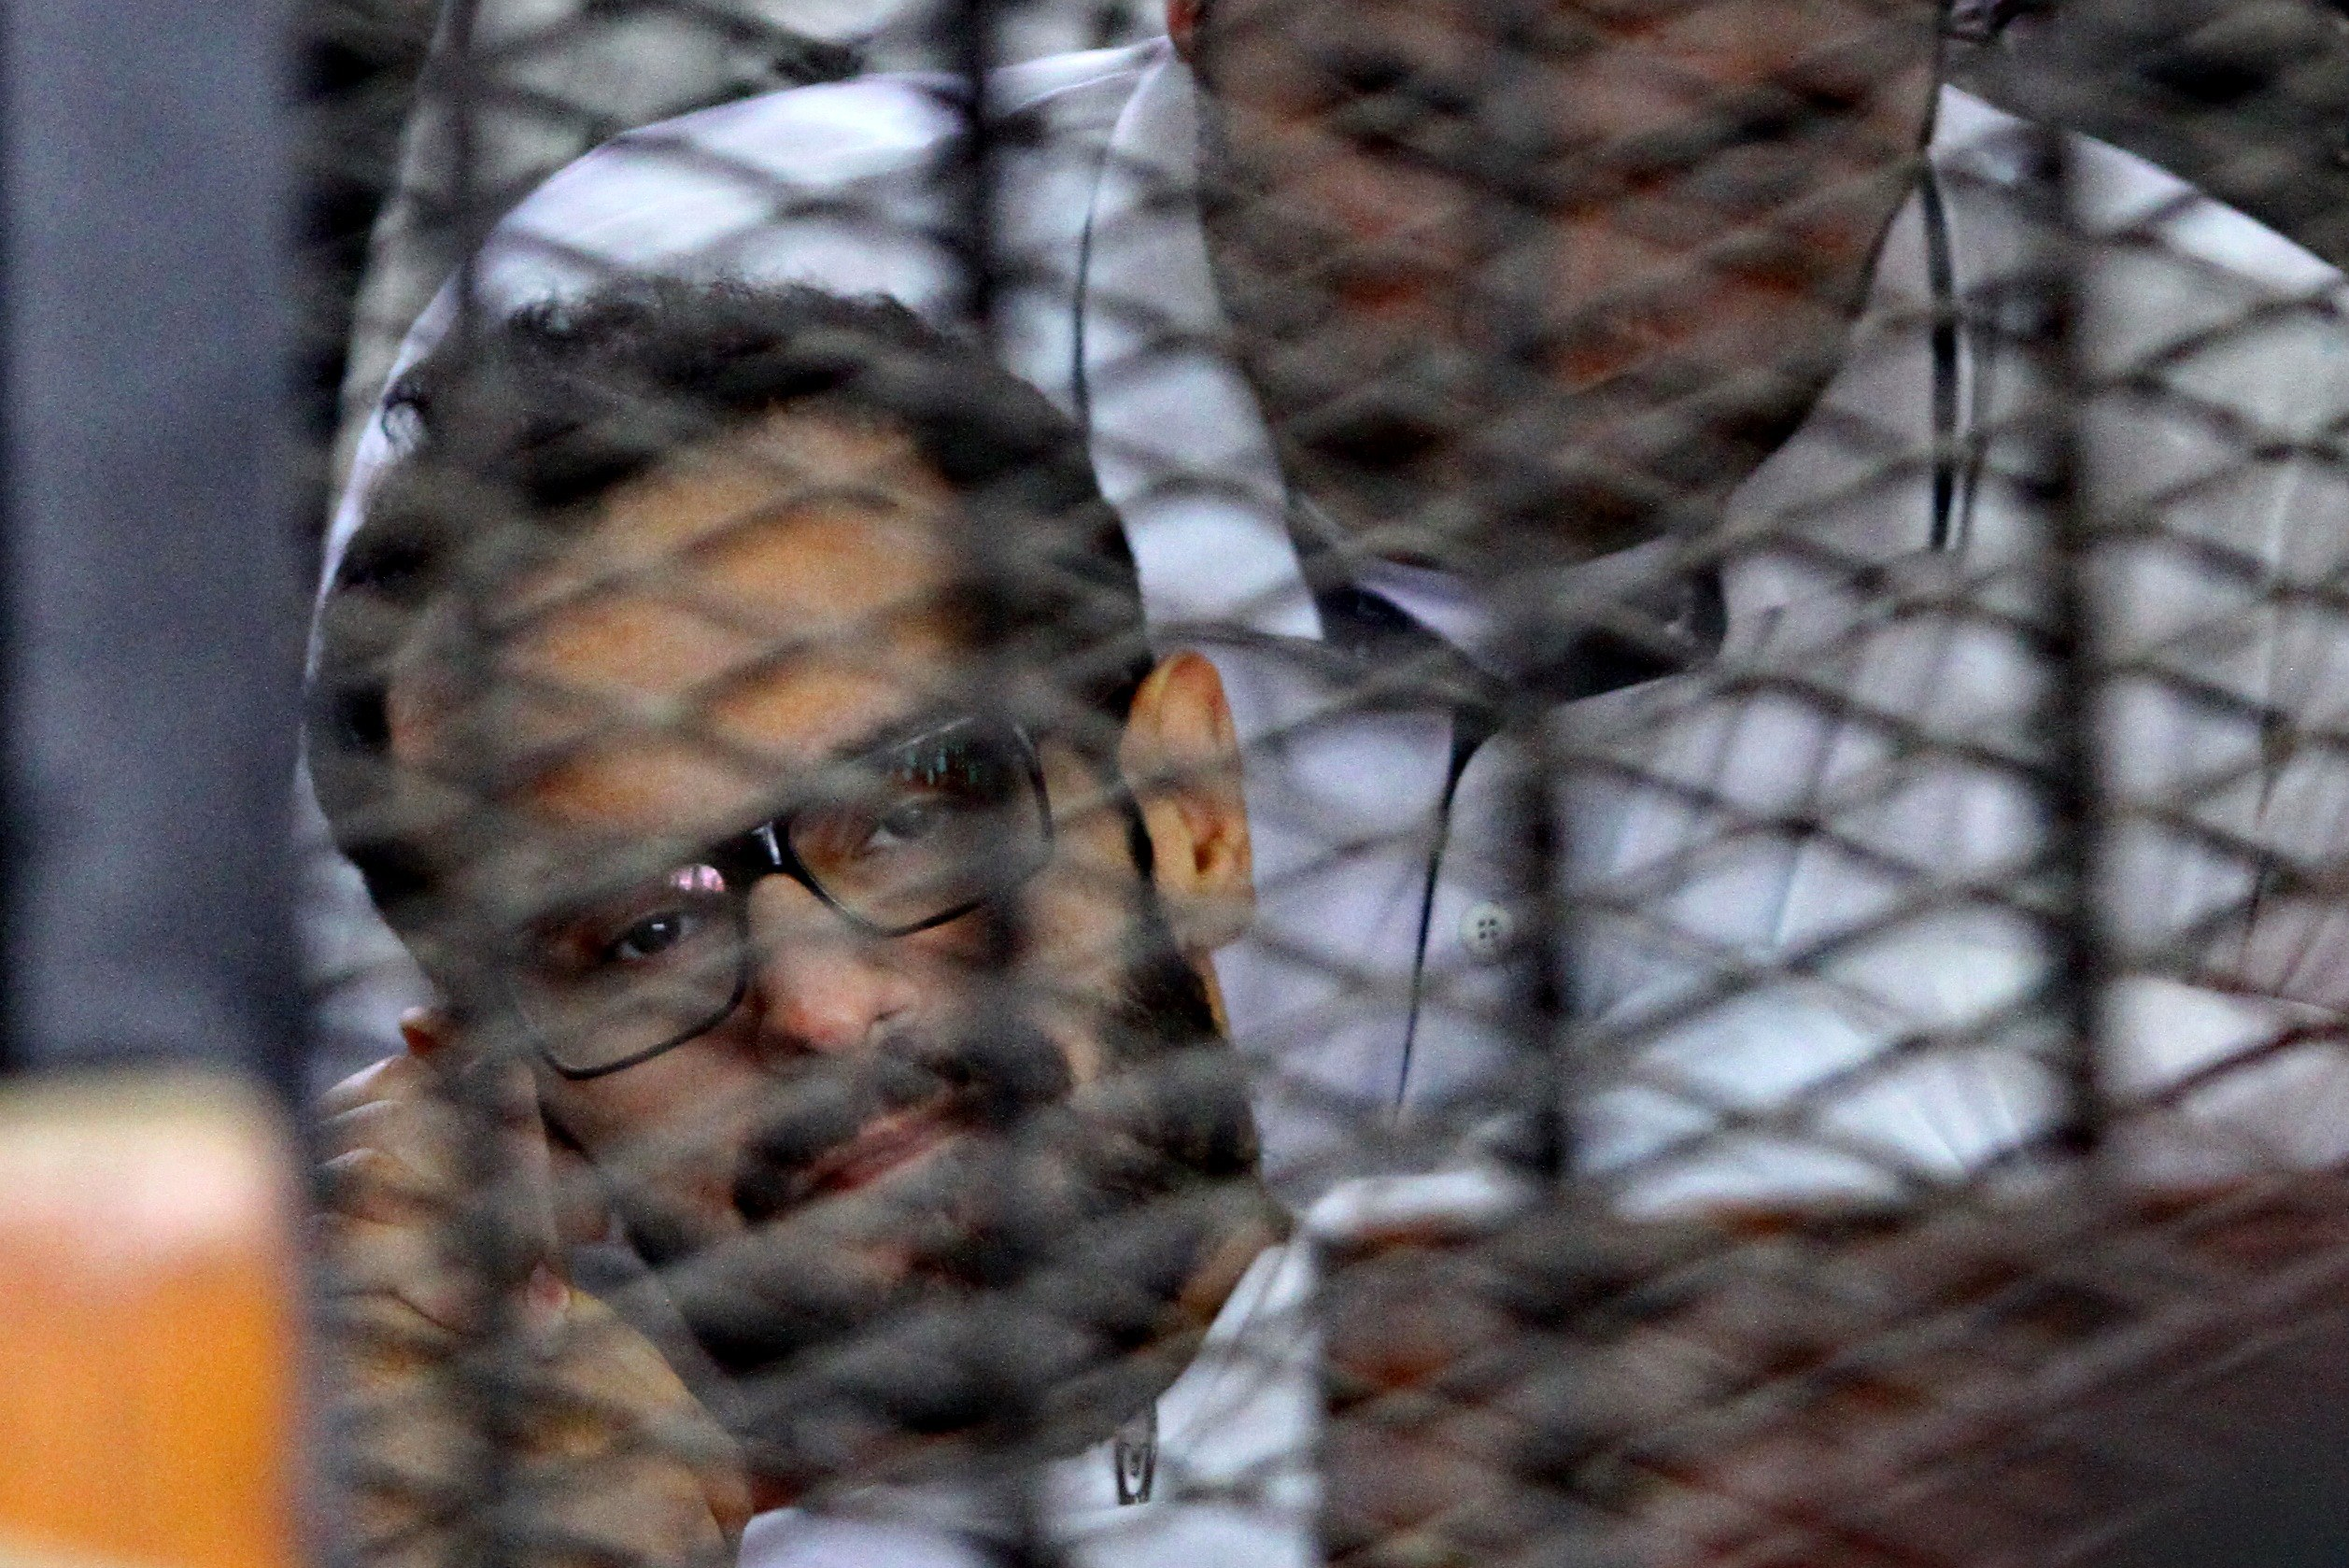 Detained American-Egyptian activist, Mohamed Sultan sits behind the bars of the accused dock during his trial on June 23, 2014 in the Egyptian capital Cairo.  (AFP PHOTO / STR)